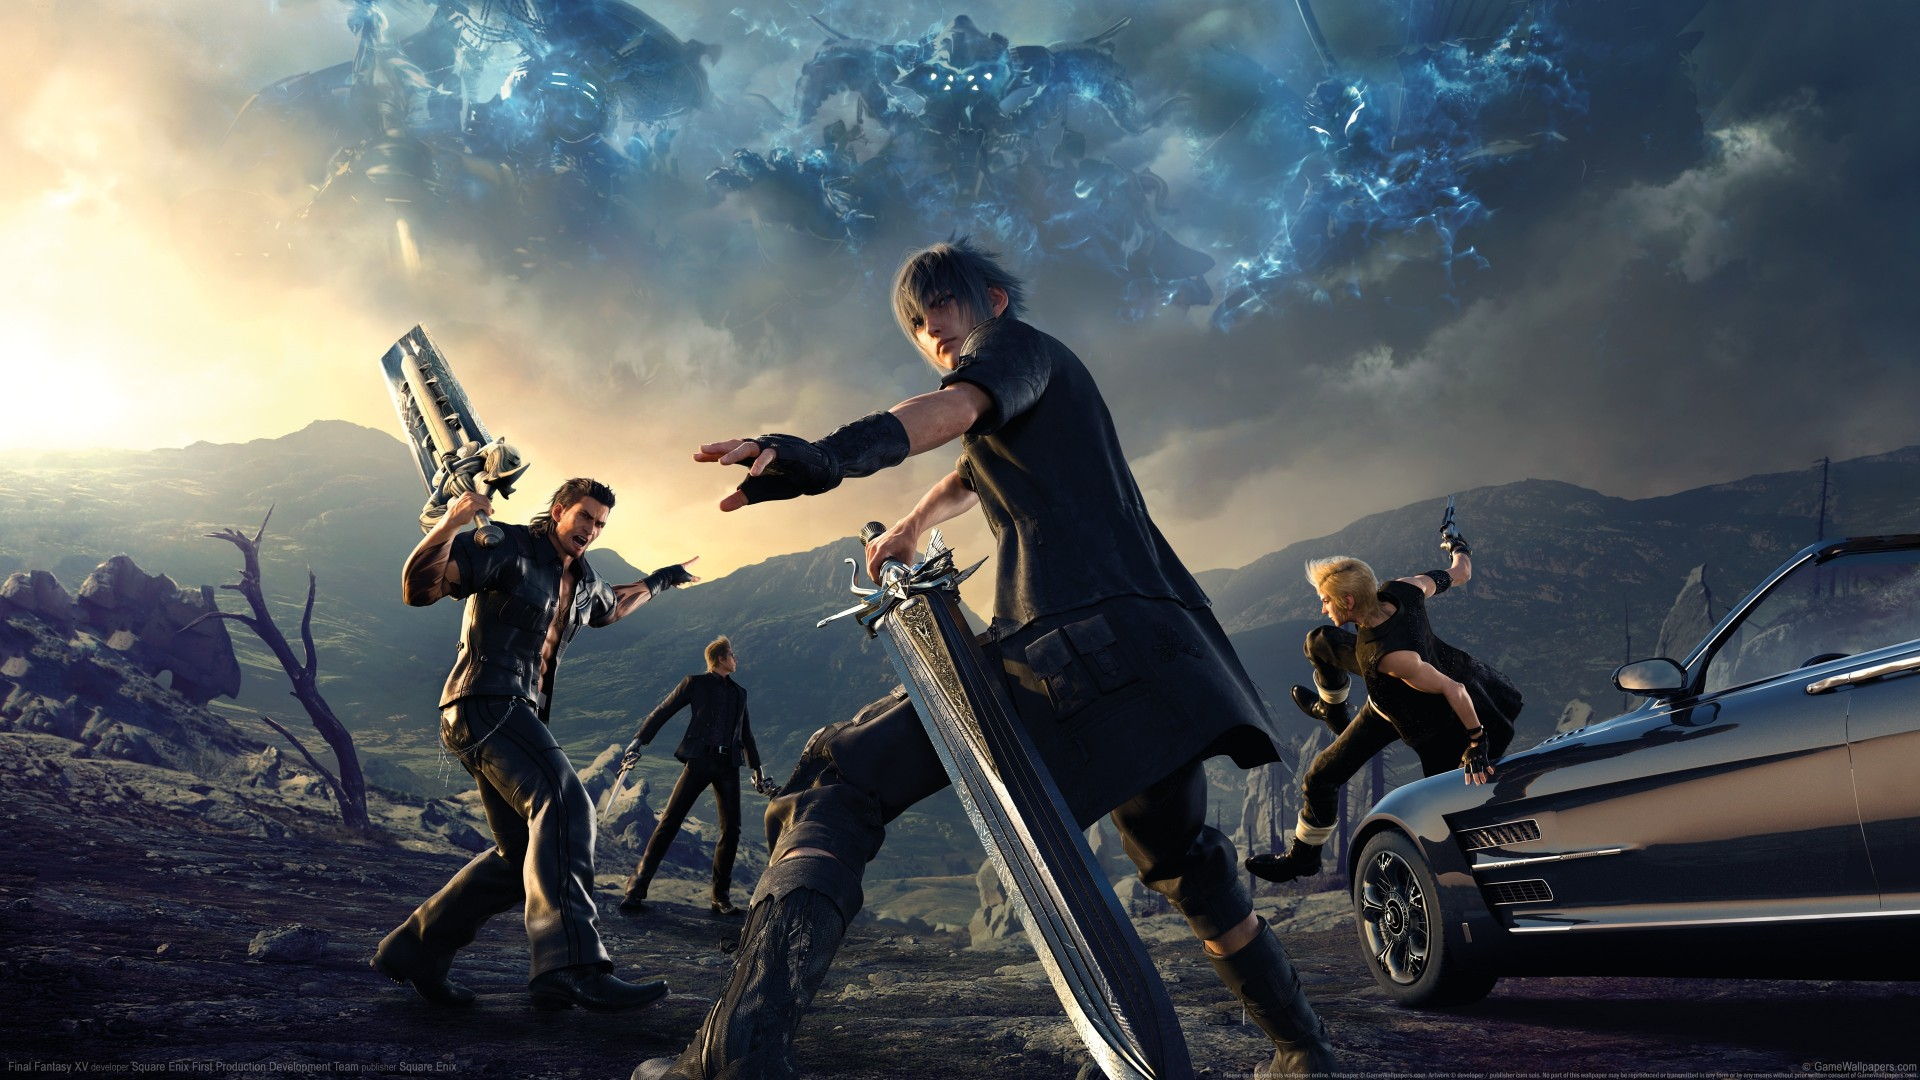 Wallpaper Final Fantasy 15 Episode Gladiolus Xbox One Pc Ps4 Games 13208 Page 6